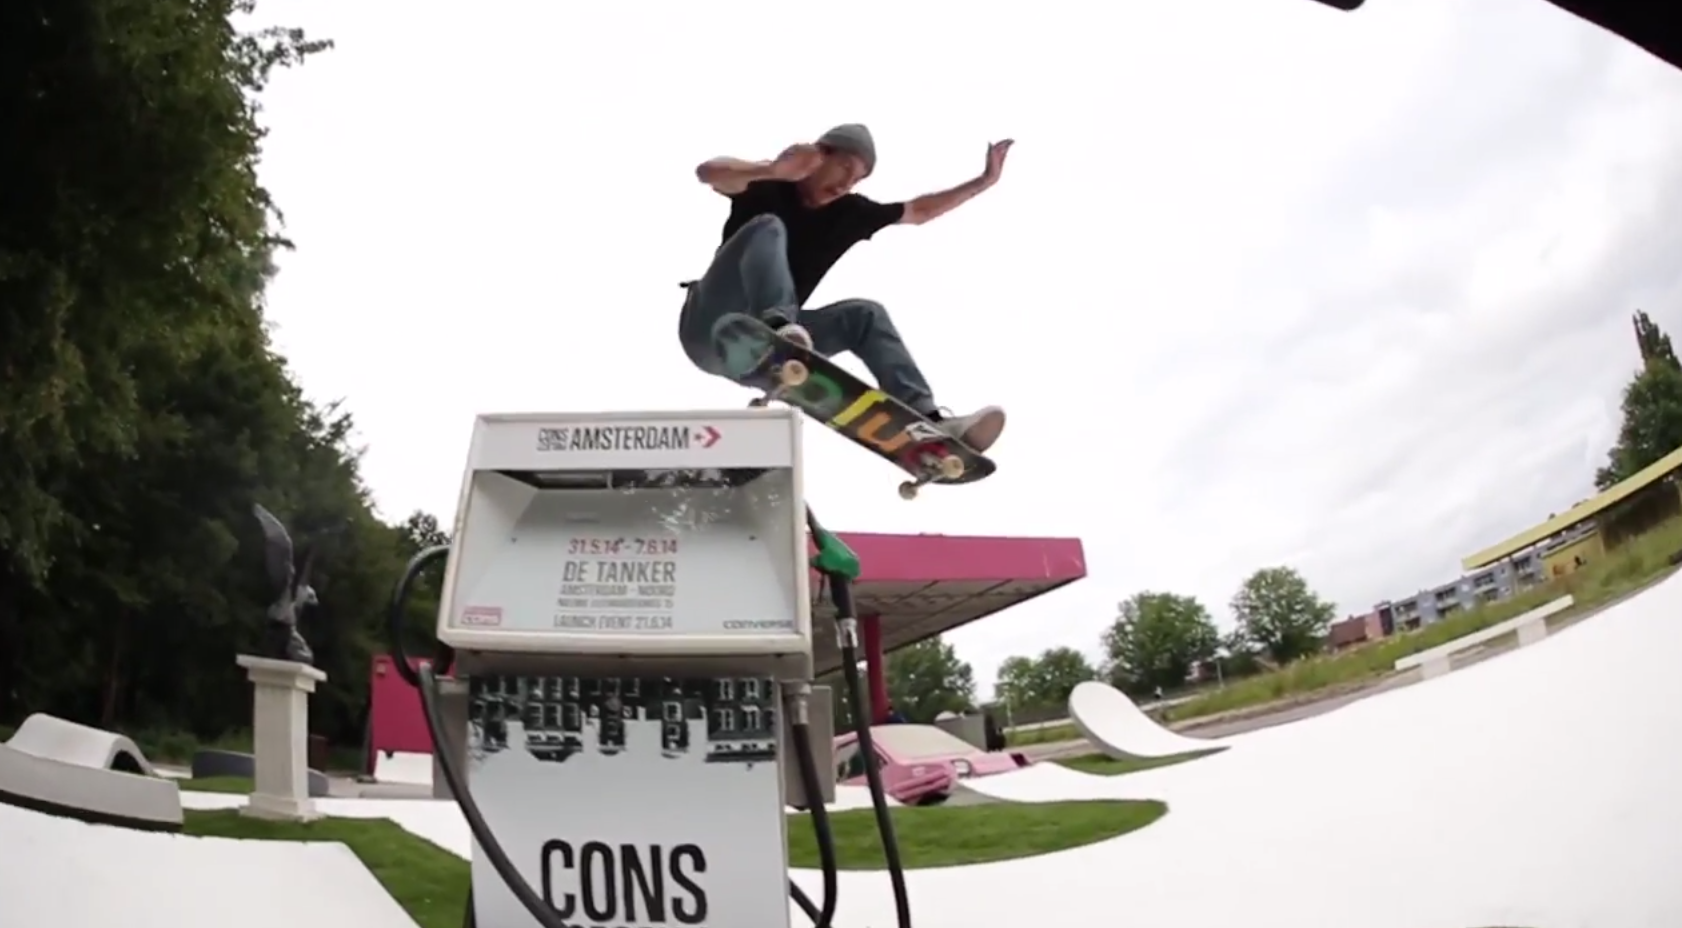 504dca765ec716 Converse CONS Project Amsterdam Launch Event YouTube - BOARD ACTION